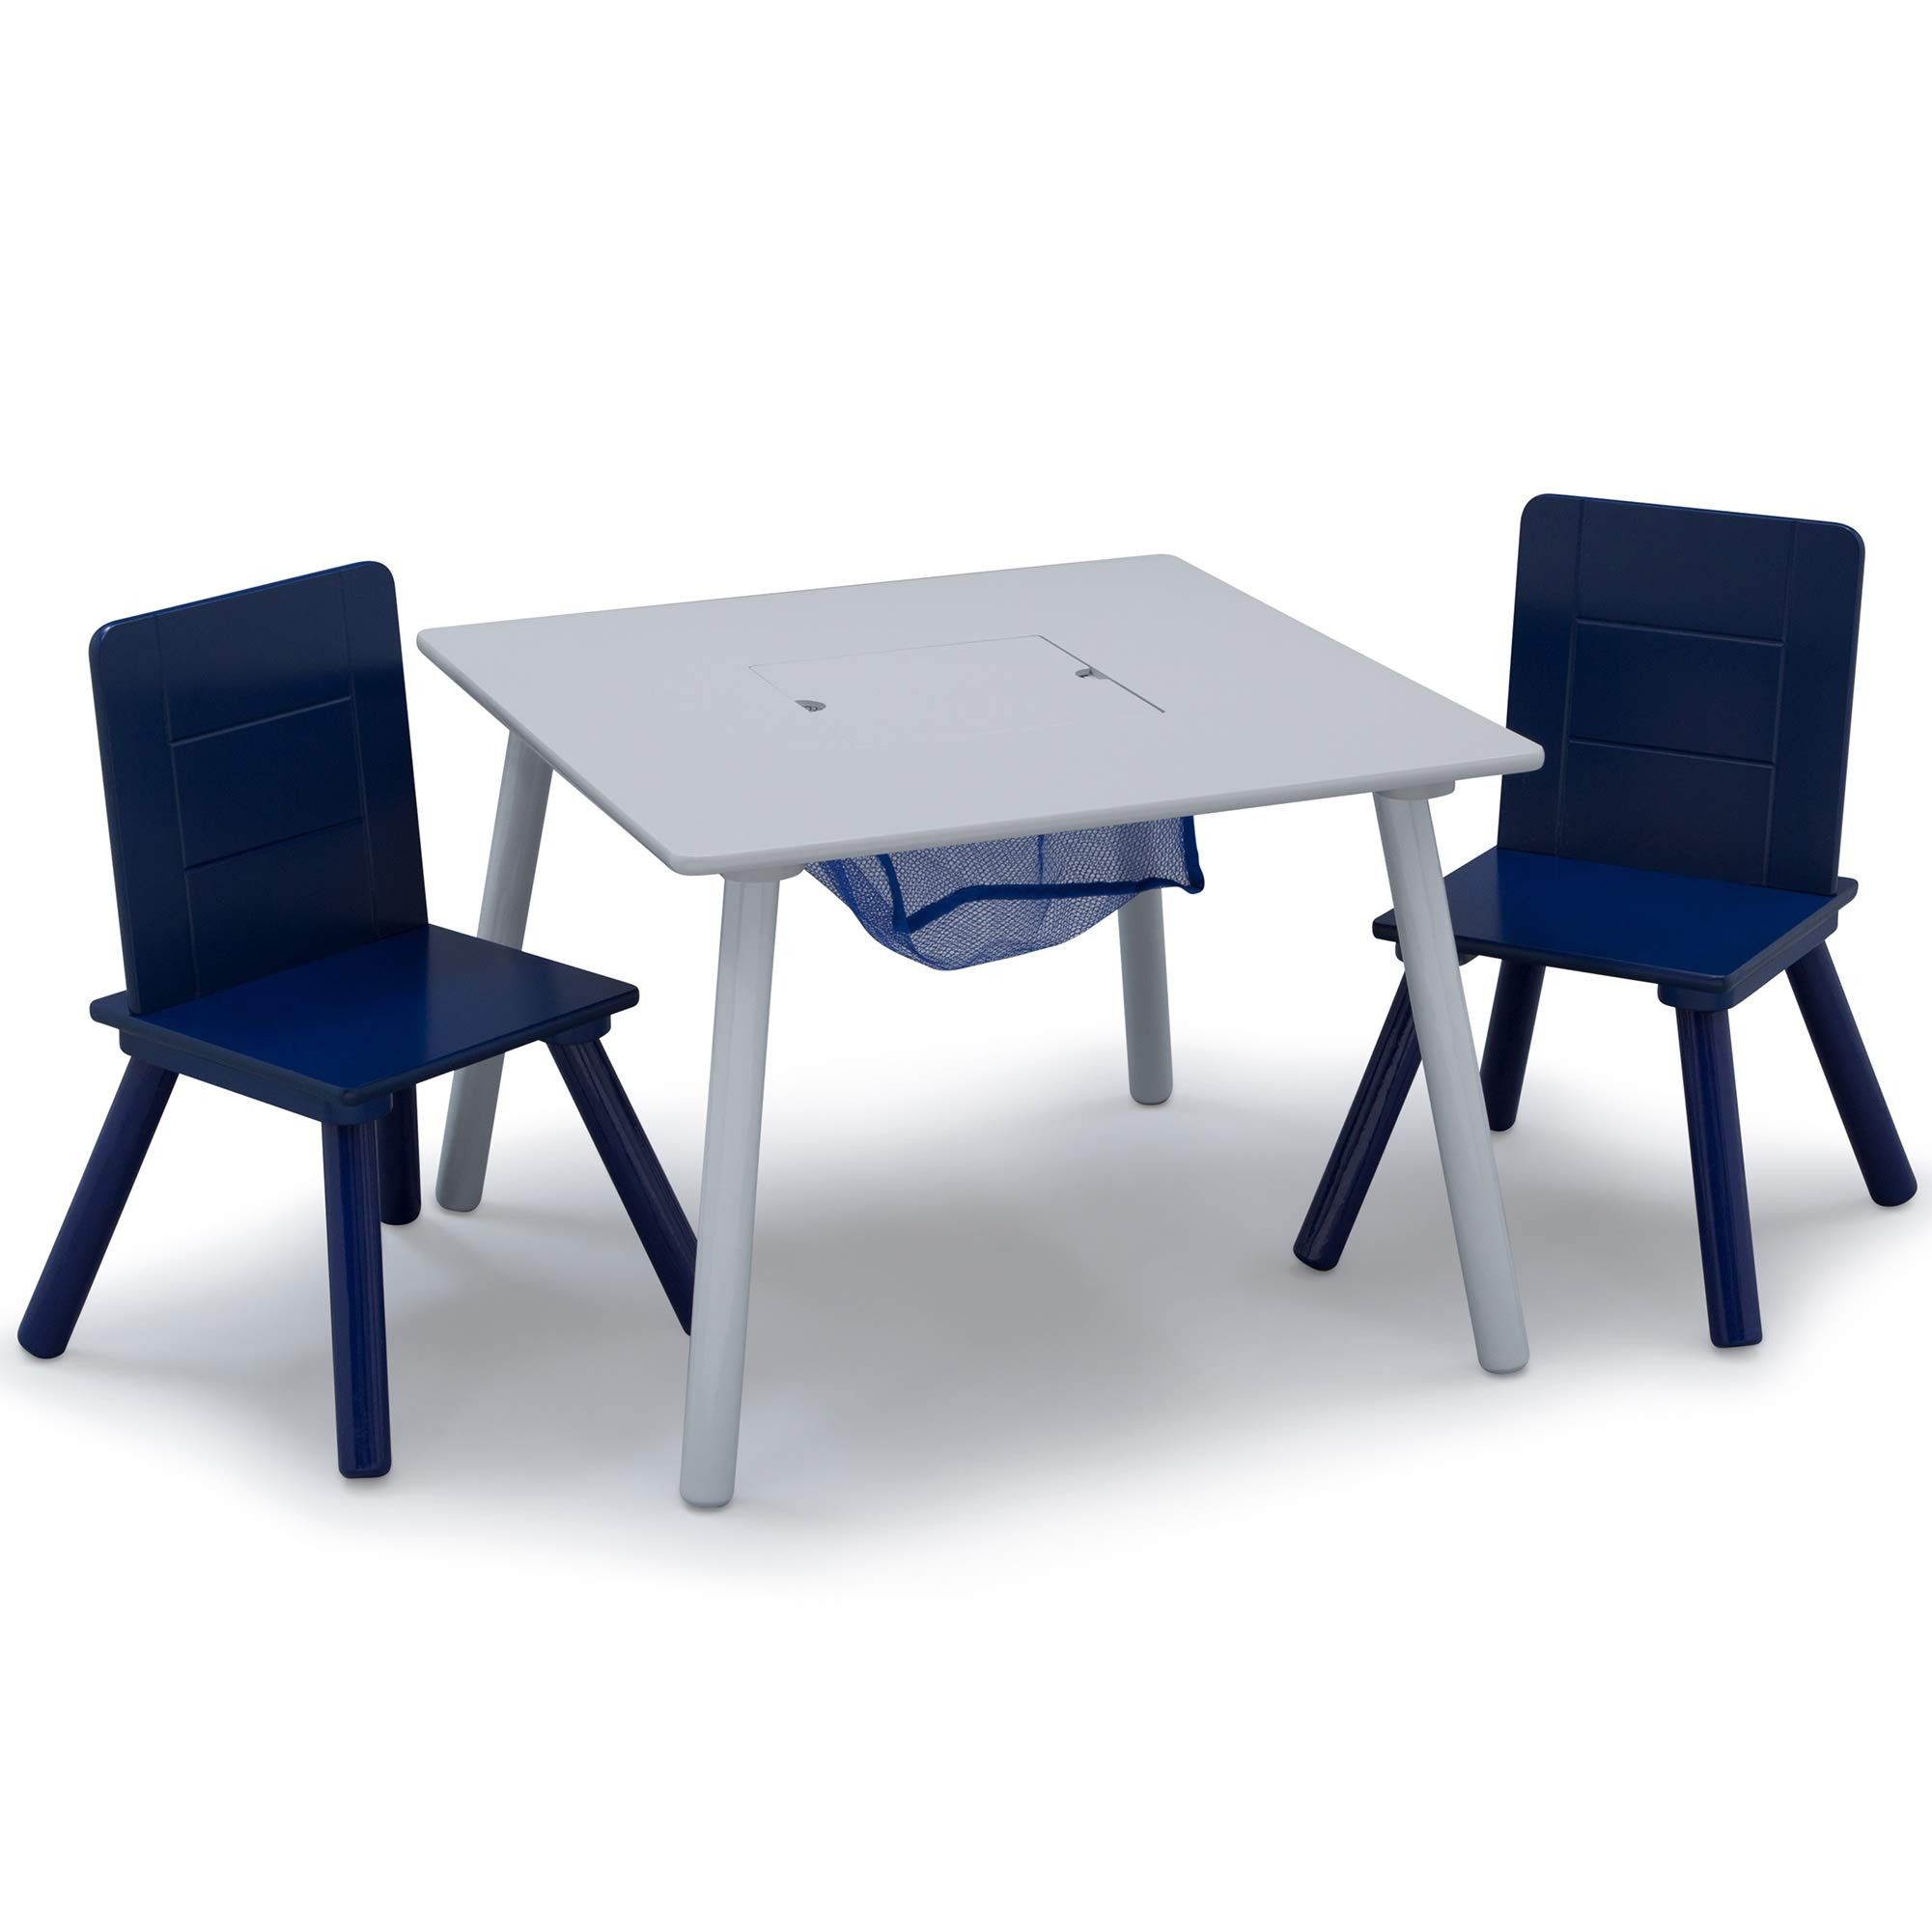 Delta Children Kids Table & Chair Set with Storage (2 Chairs Included), Grey/Blue by Delta Children